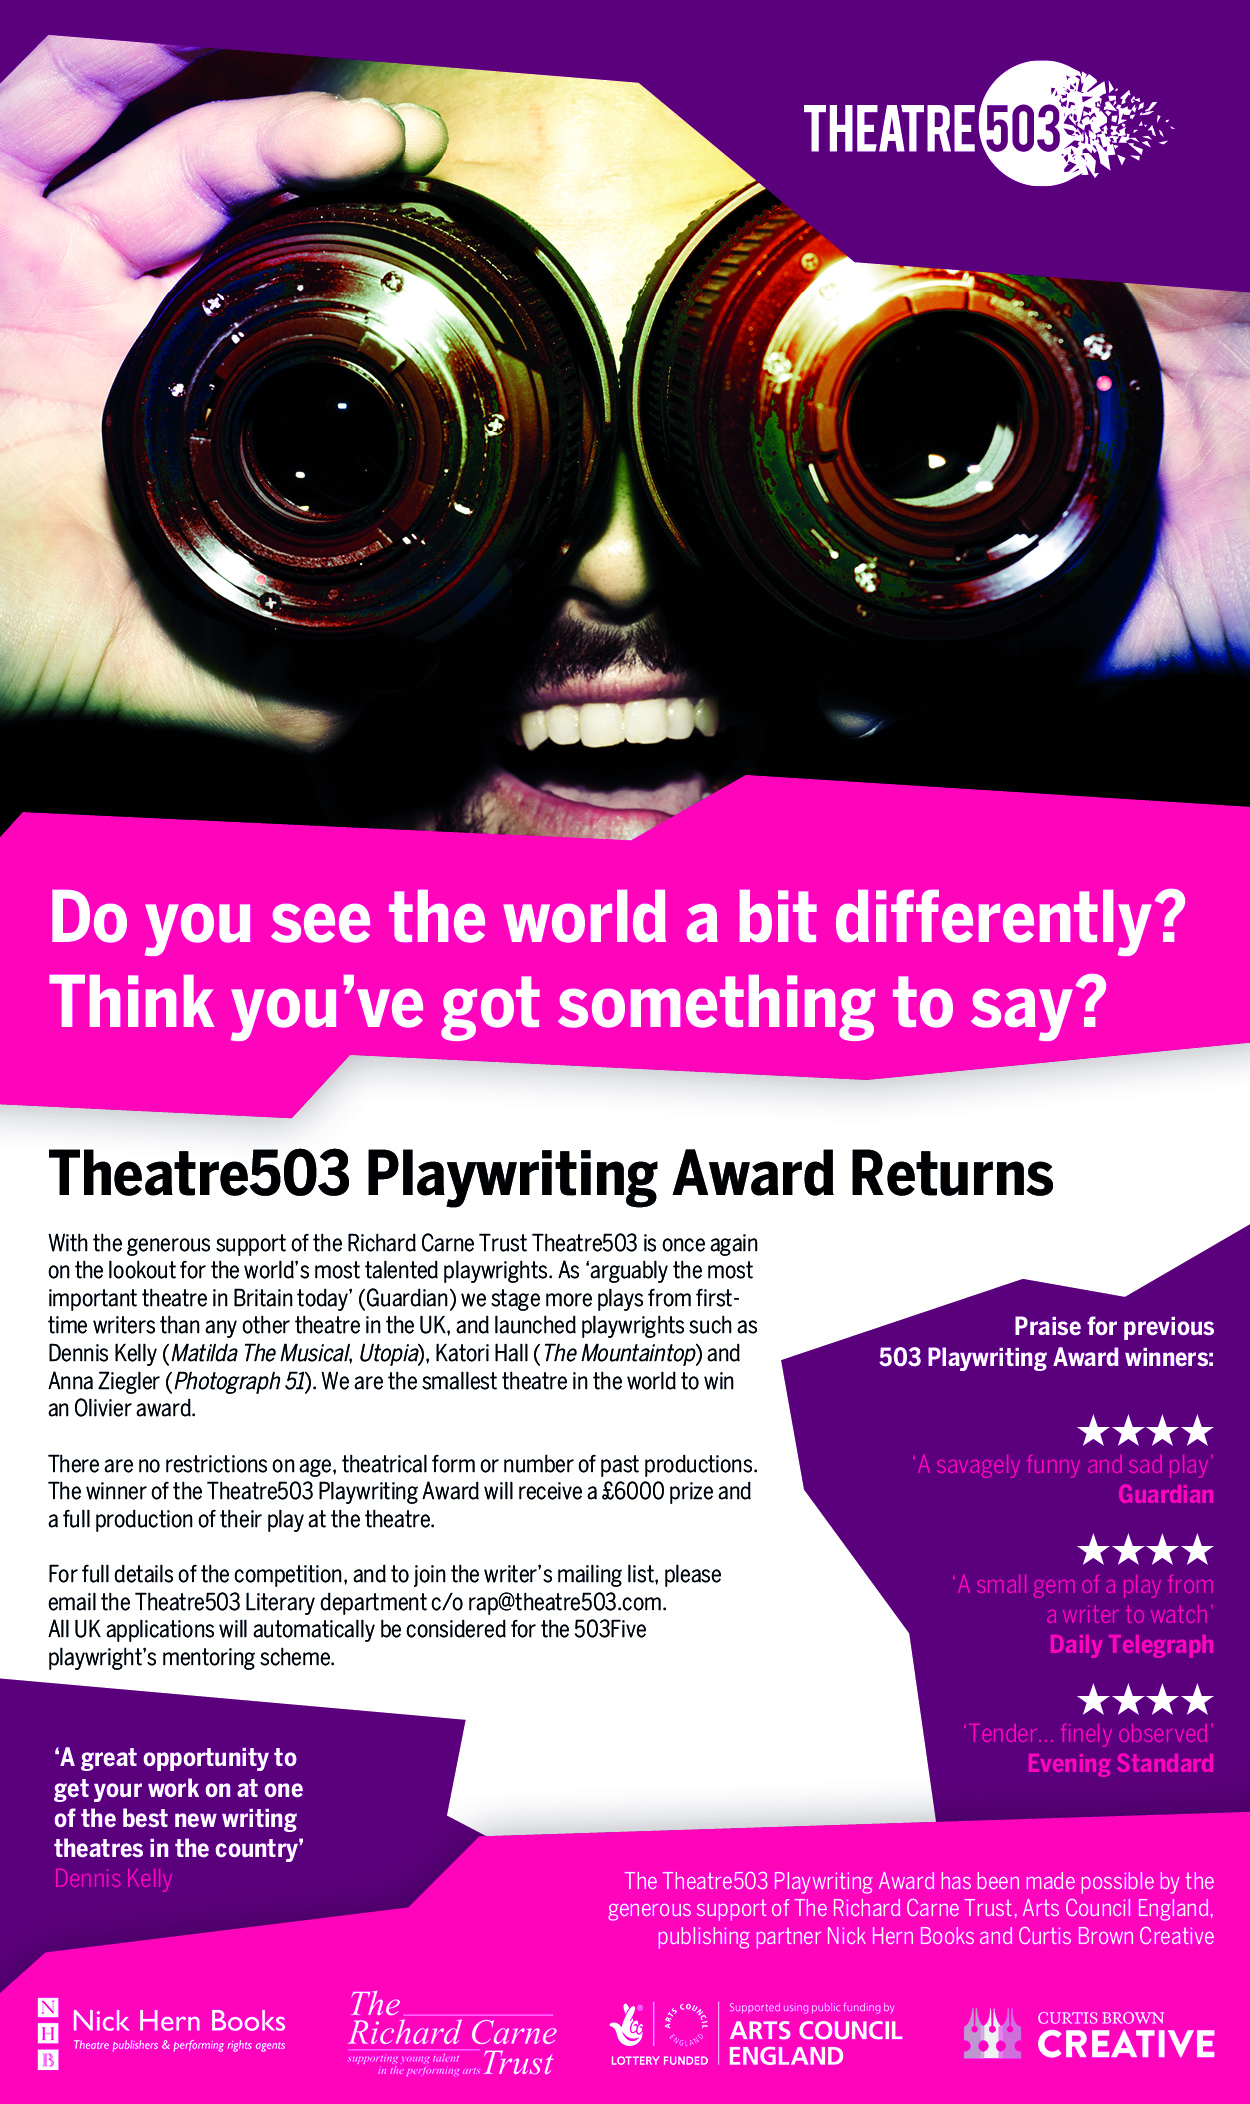 Theatre503 Playwriting Award